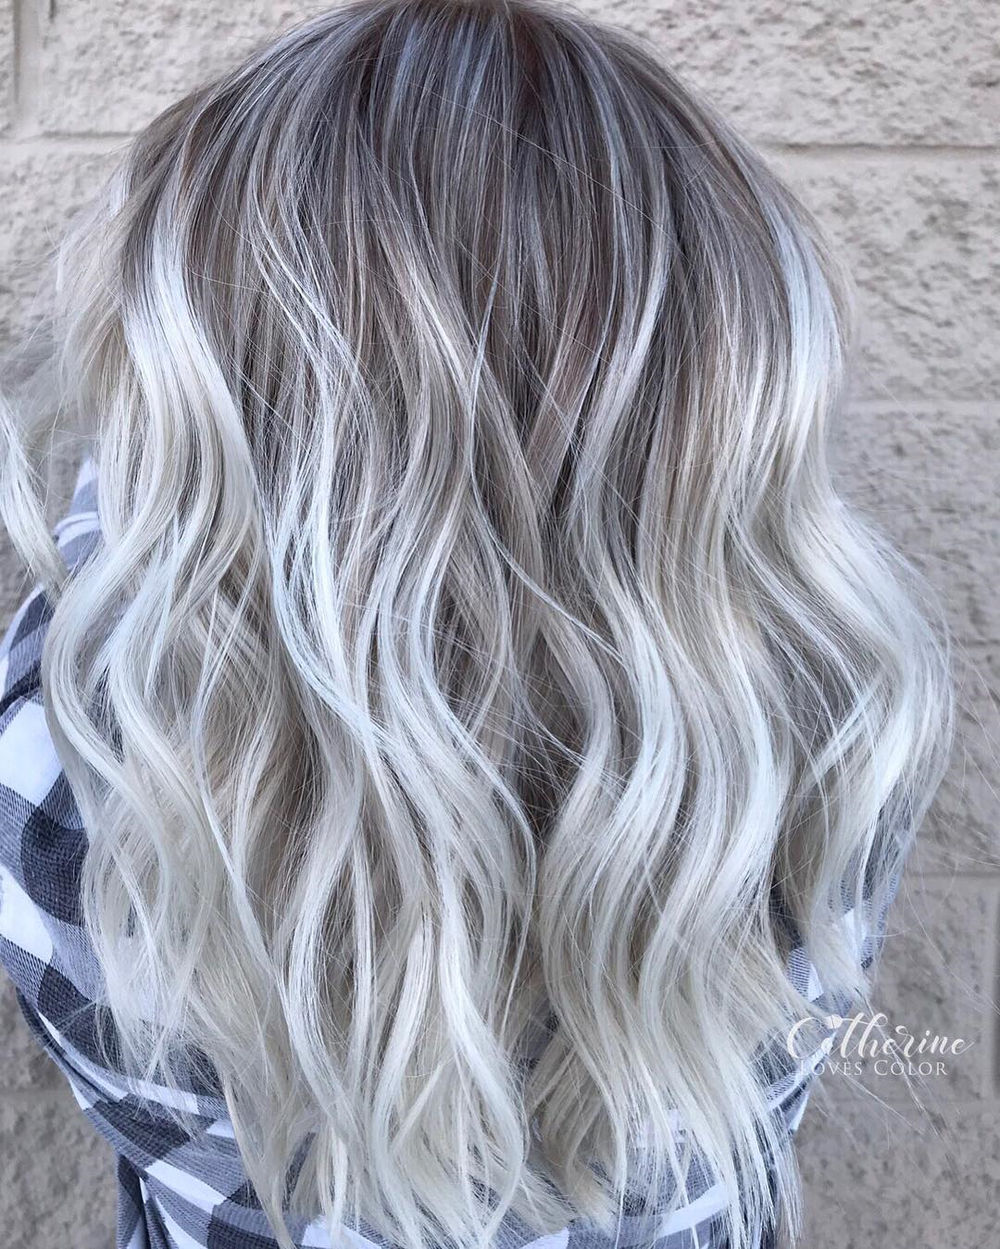 Dishwater Blonde Hair with Silver Highlights